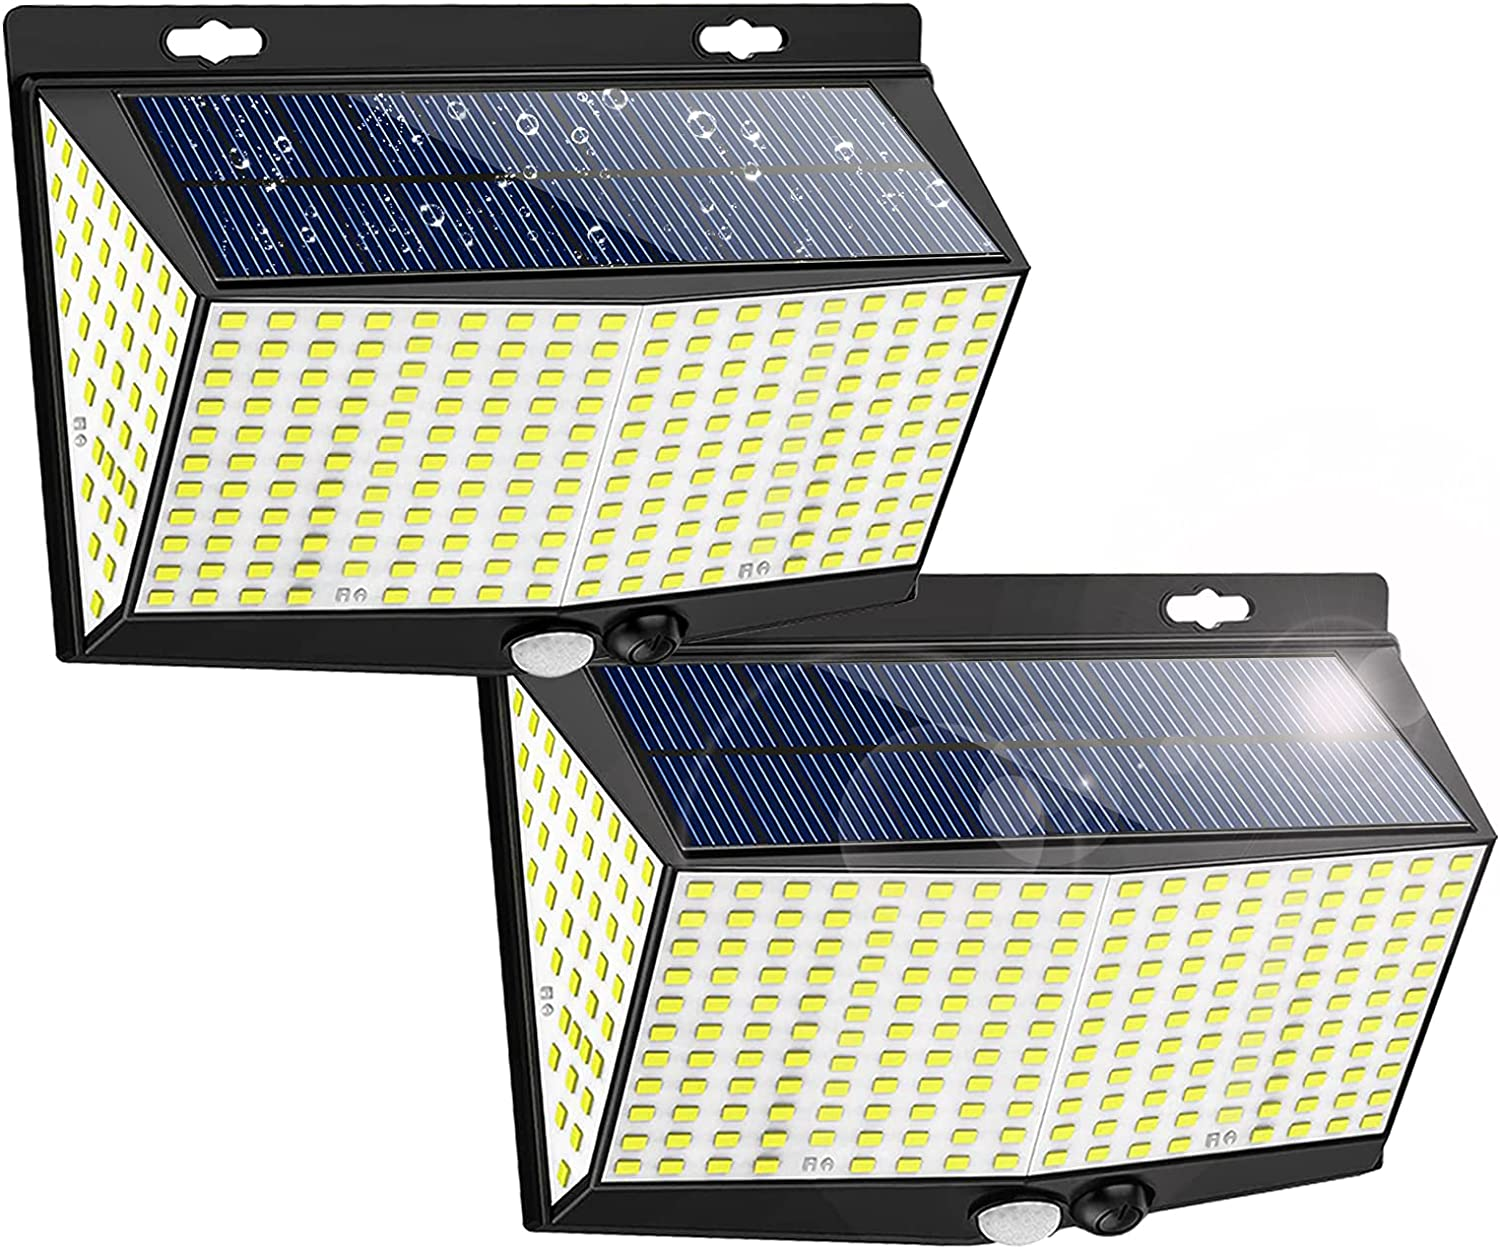 Solar Motion Sensor Lights Outdoor,288 LEDs Solar Outdoor Wall Light with 270° Wide Angle for Outdoor Waterproof Motion Sensor Lighting in Patio,Garden,Yard(2 Pack)